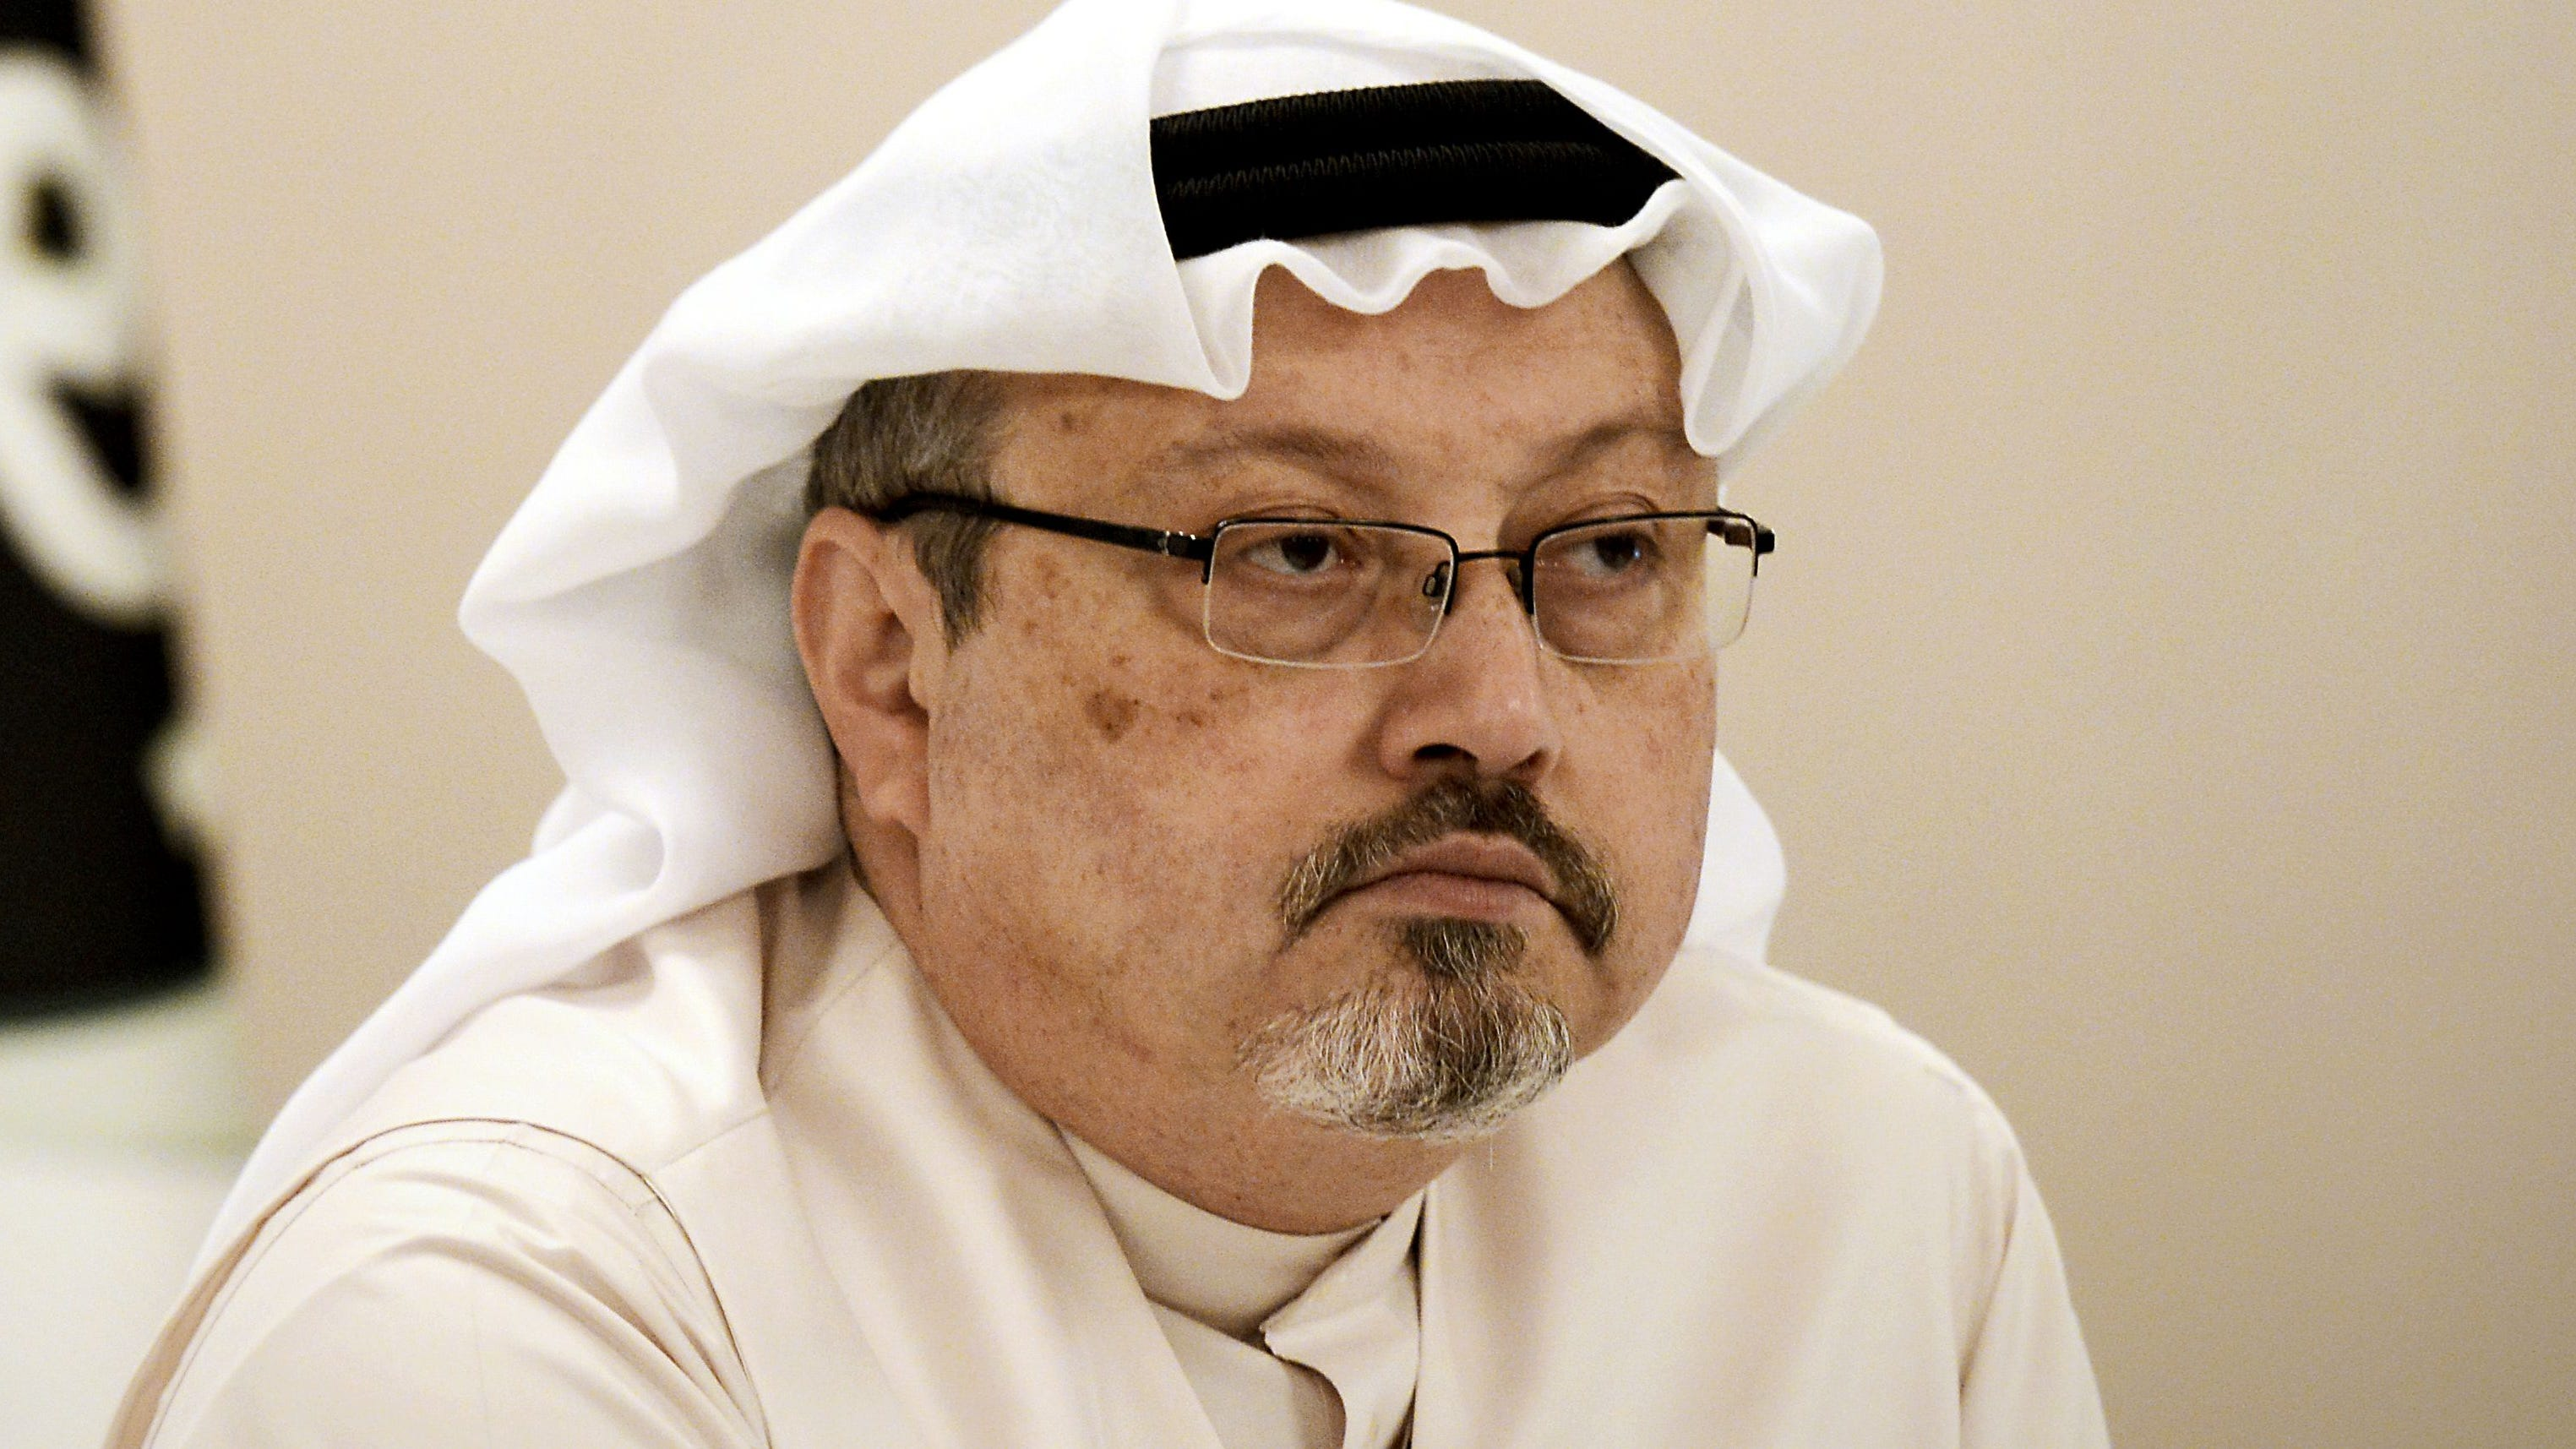 In this file photo taken on December 15, 2014 A general manager of Alarab TV, Jamal Khashoggi, looks on during a press conference in the Bahraini capital Manama.